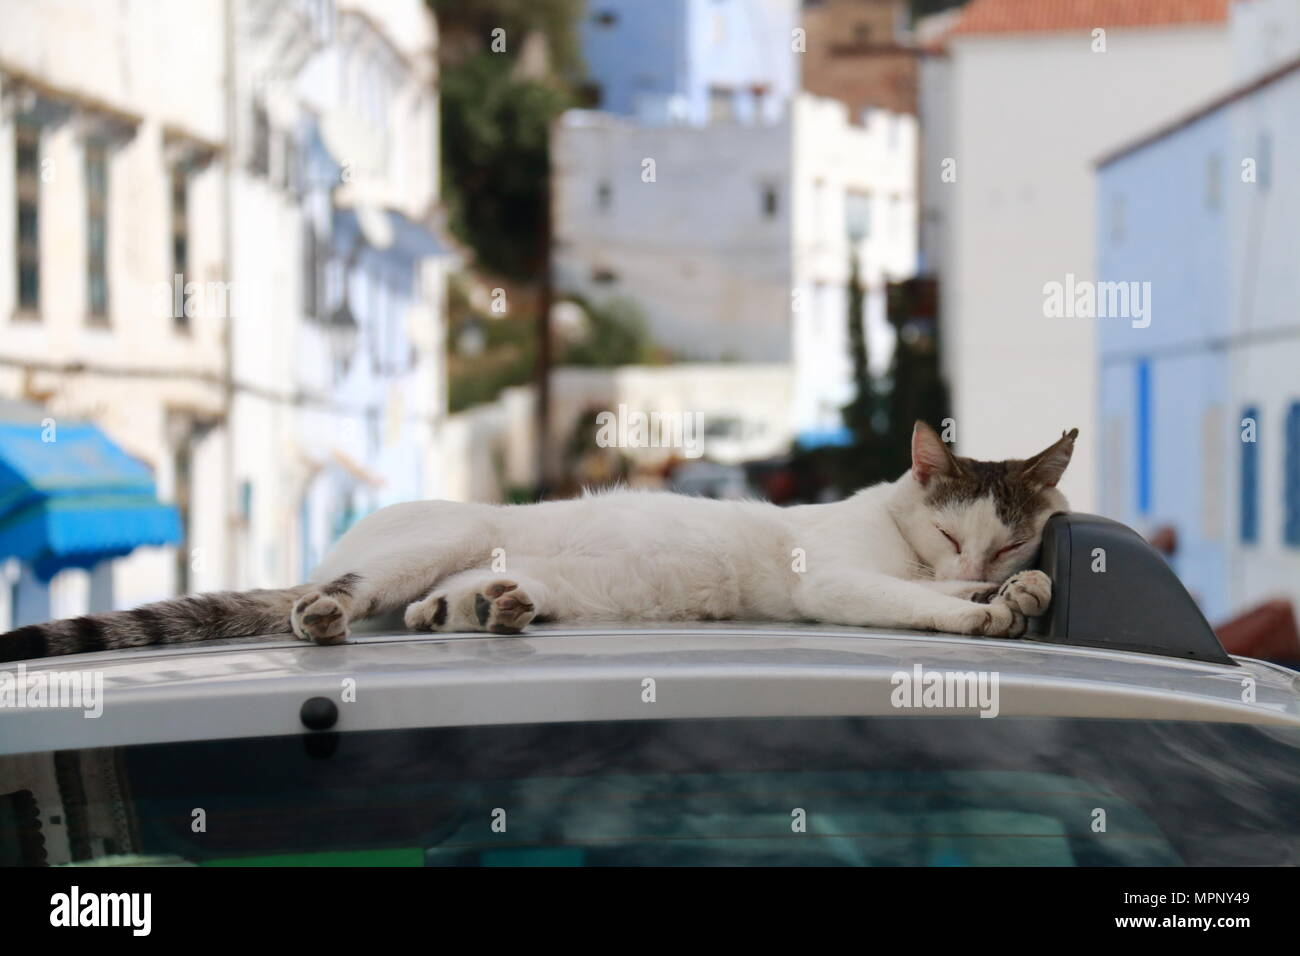 Cat sleeping on the roof of a car - Stock Image